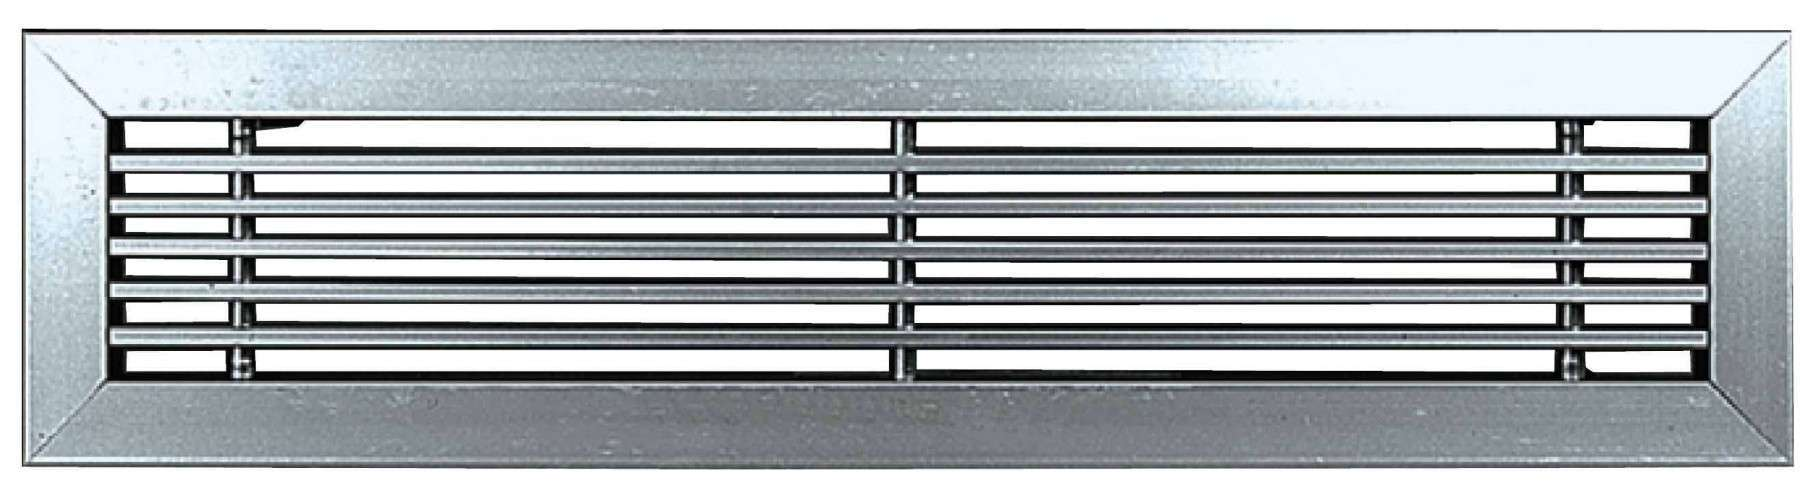 GLF 1000X150 BLANCHE UNELVENT DIFFUSEUR LINEAIRE 850198